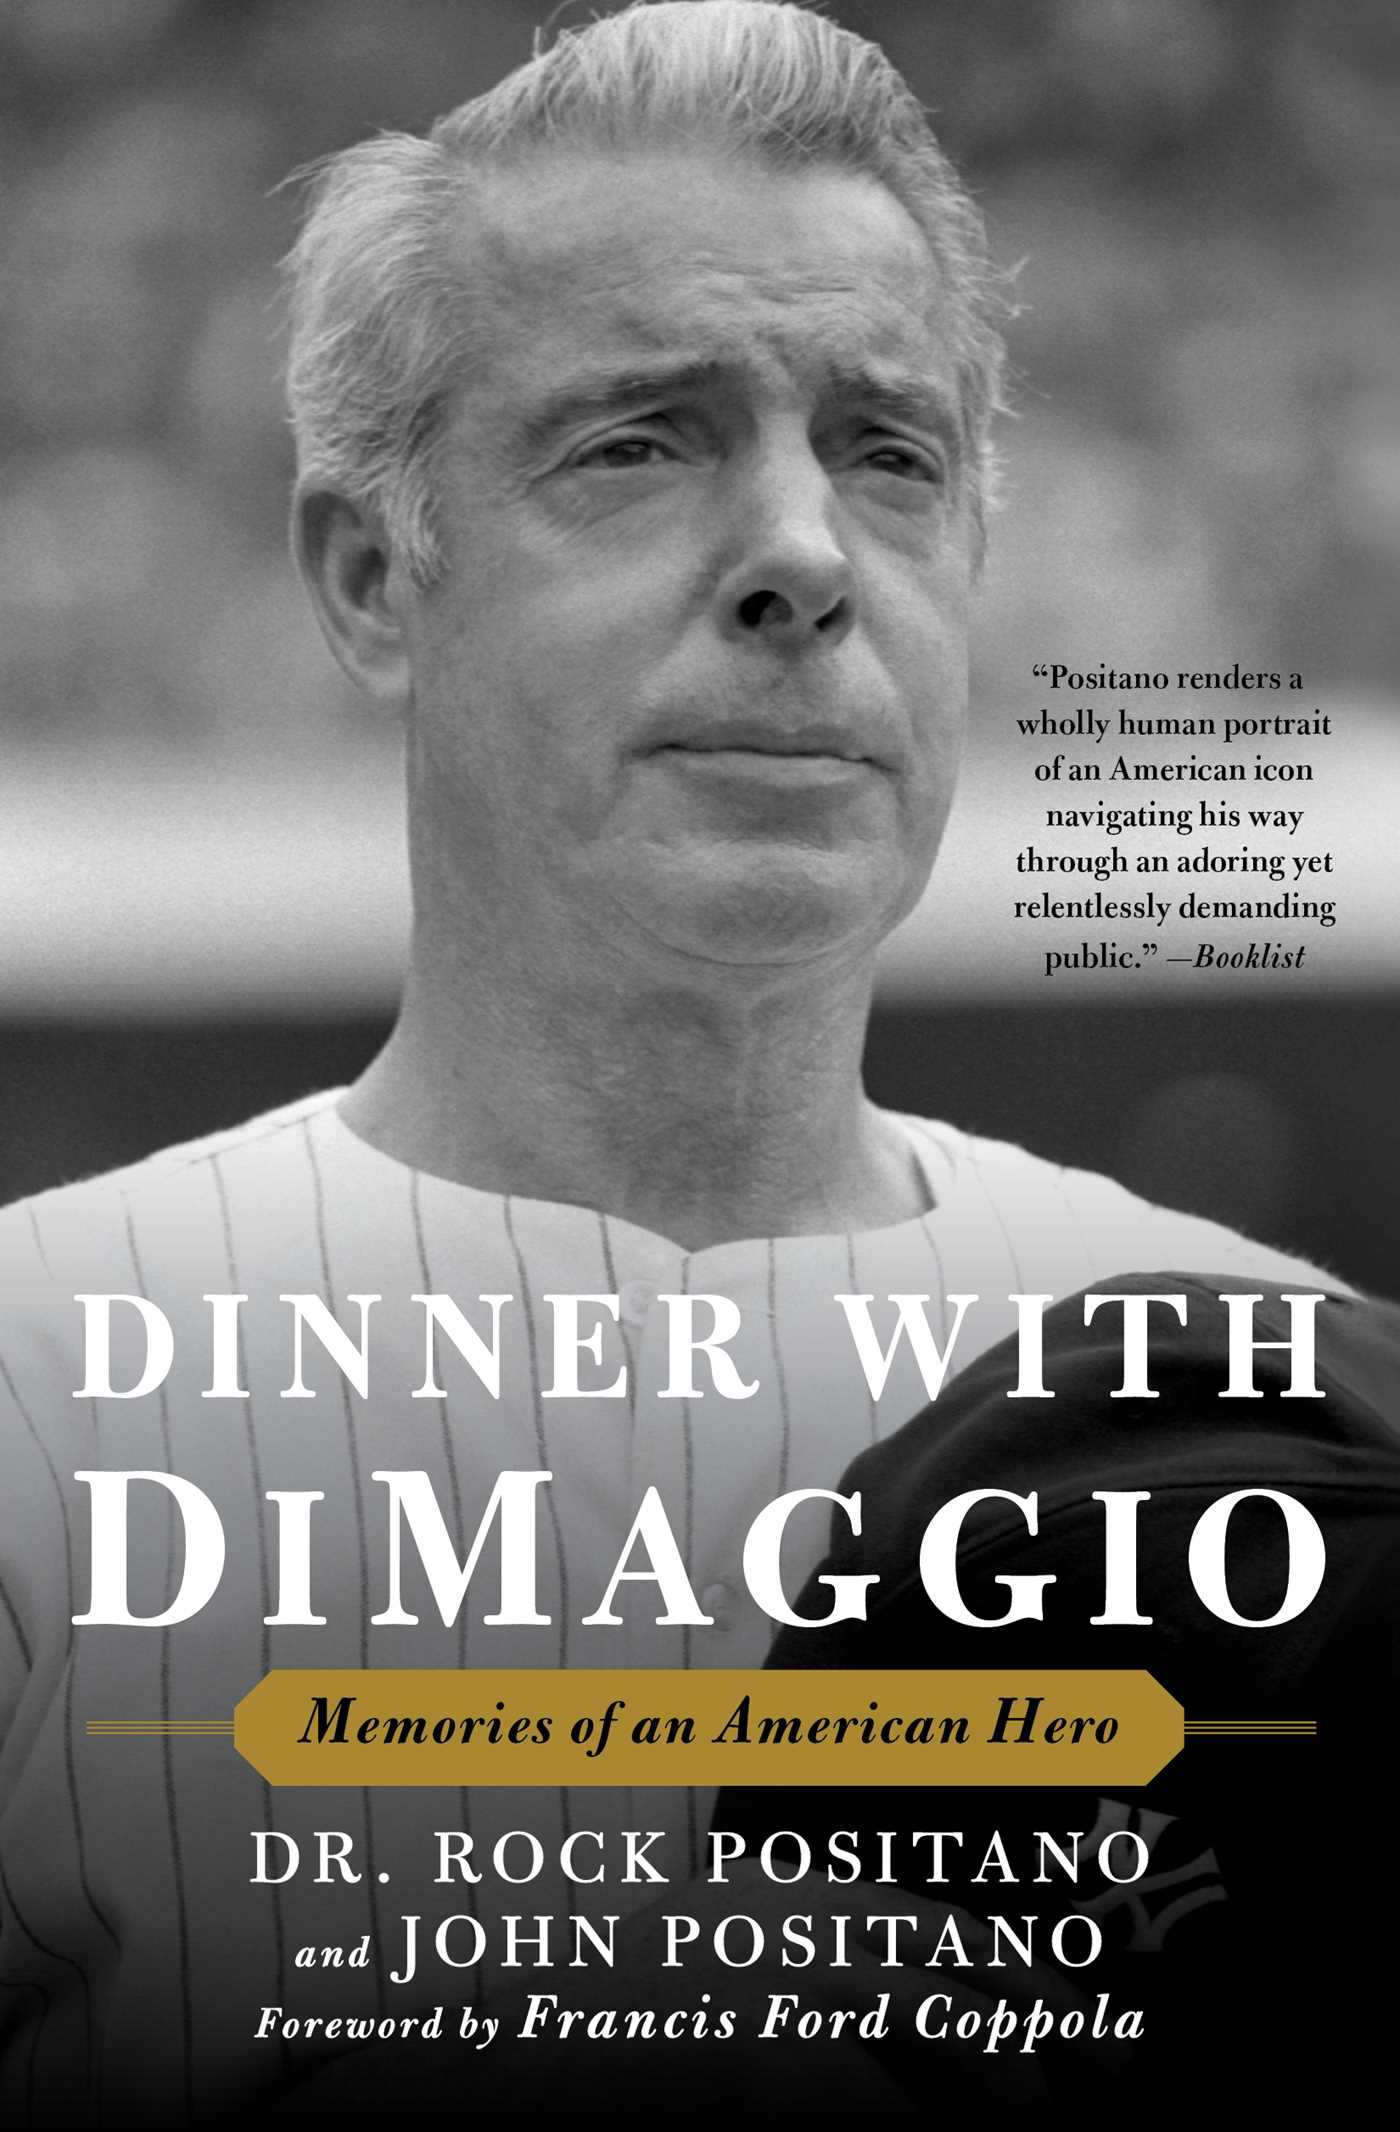 Dinner with dimaggio 9781501156854 hr